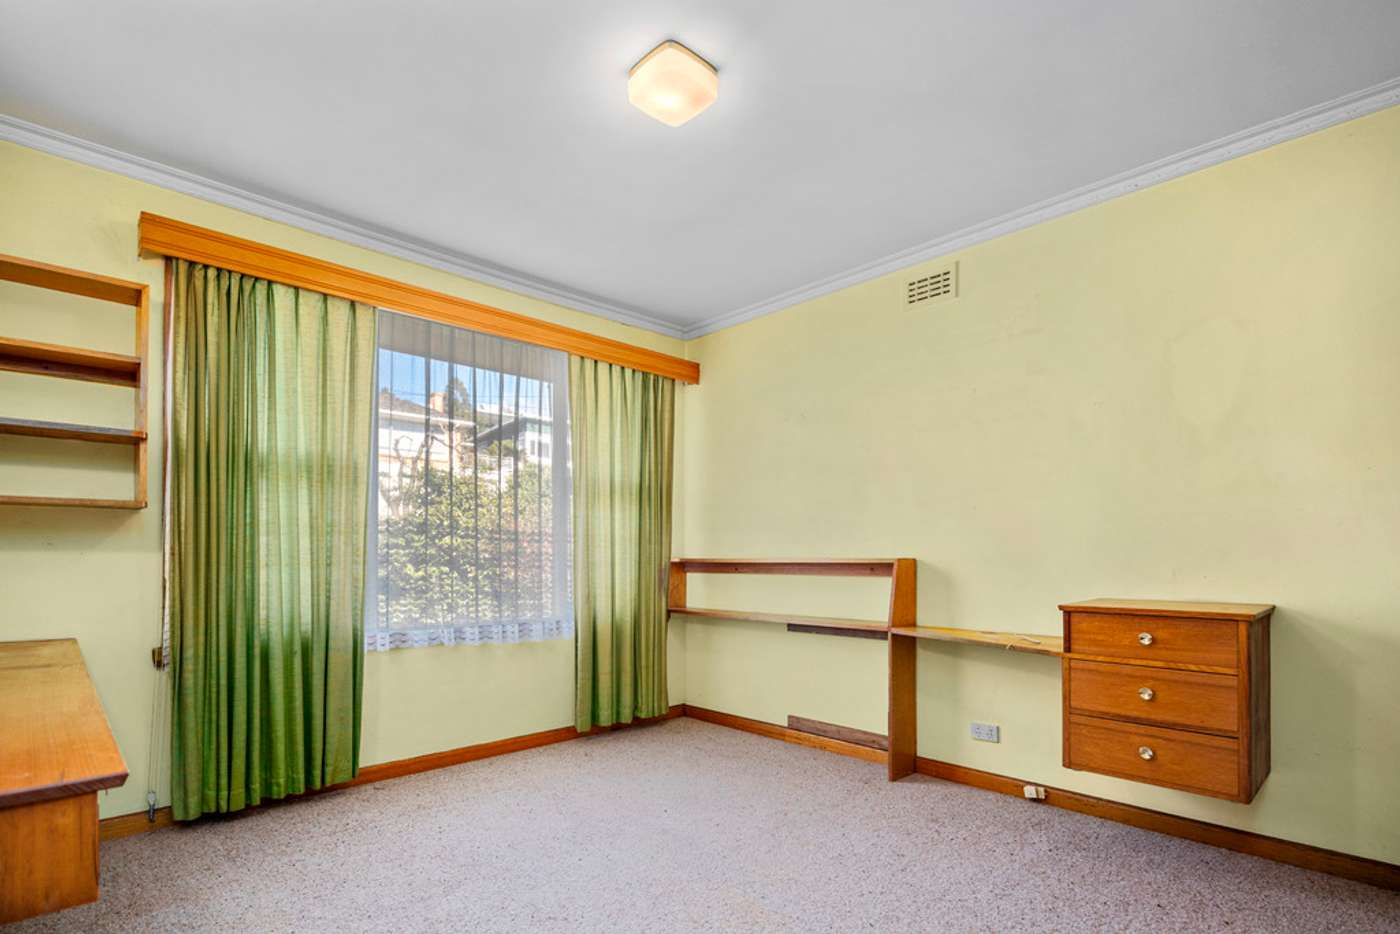 Fifth view of Homely house listing, 50 Dion Crescent, Riverside TAS 7250